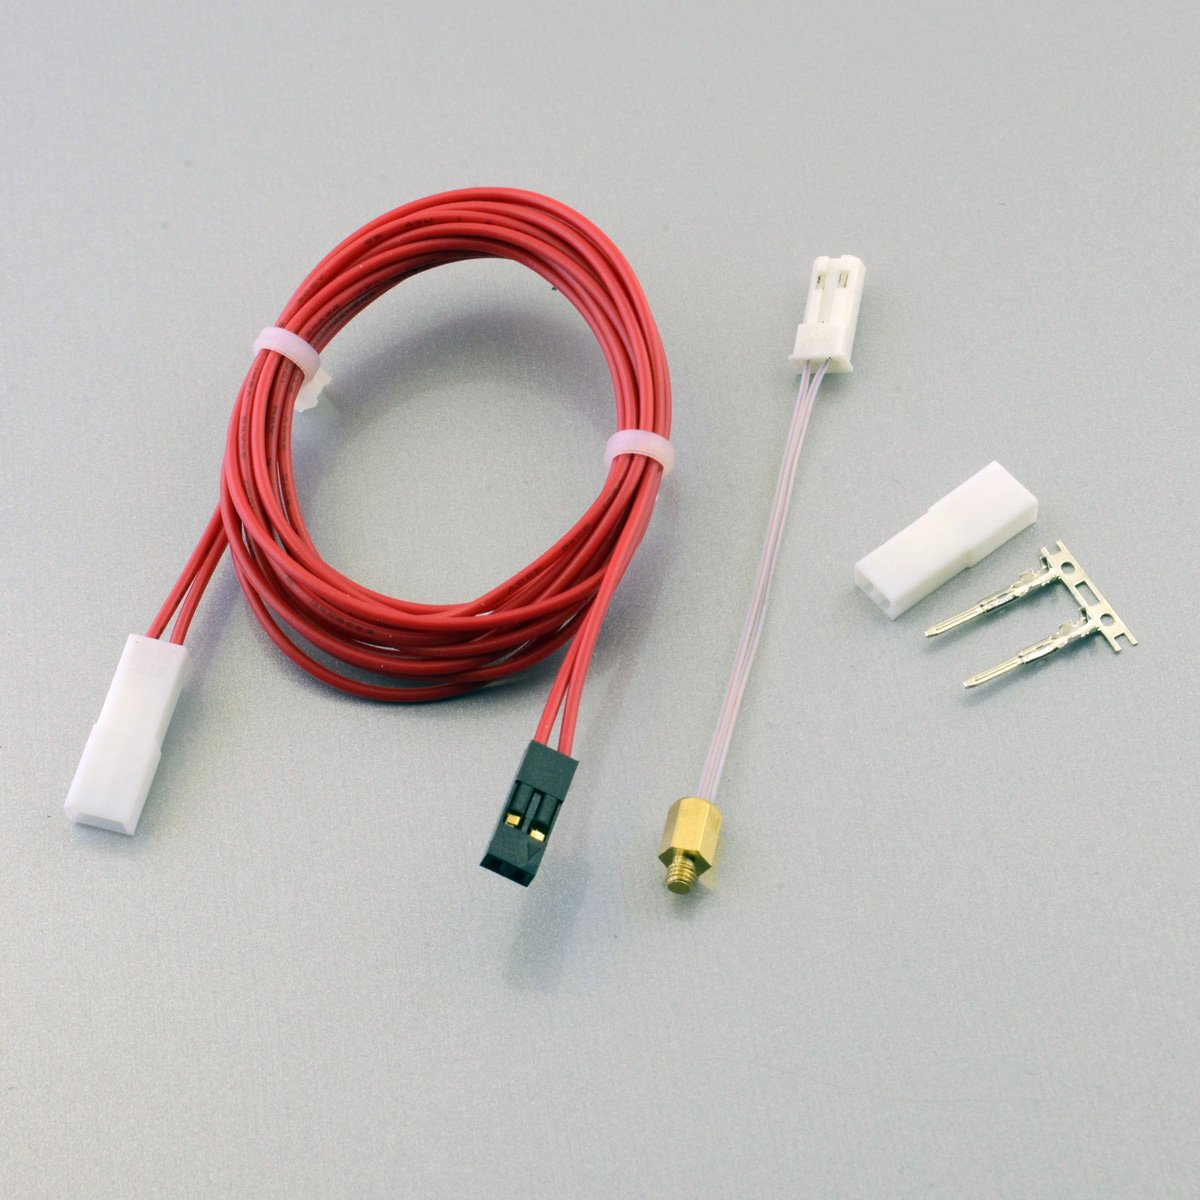 71TLv%2B9trzL._SL1200_ amazon com m3 stud thermistor cable for reprap 3d printer  at eliteediting.co